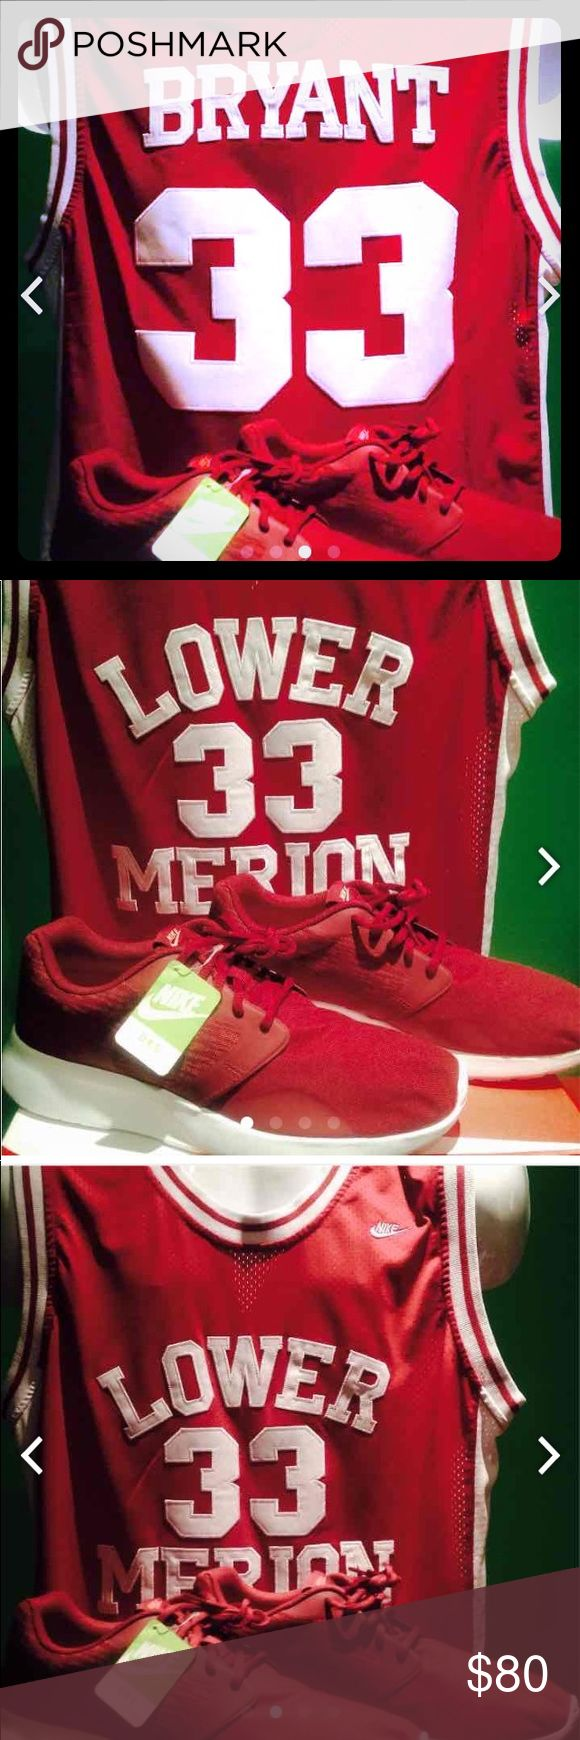 Kobe high school jersey size 1x combo shoes size11 Nike Kobe High School Combo Pack! #33 Lower Merion Kobe Bryant's High School Jersey with a Matching Pair of Nike Kaishi's to rock with it! Jersey is in great condition  1X  very low milage and the shoes are size 11 brand new in the box! Nike Shoes Sneakers